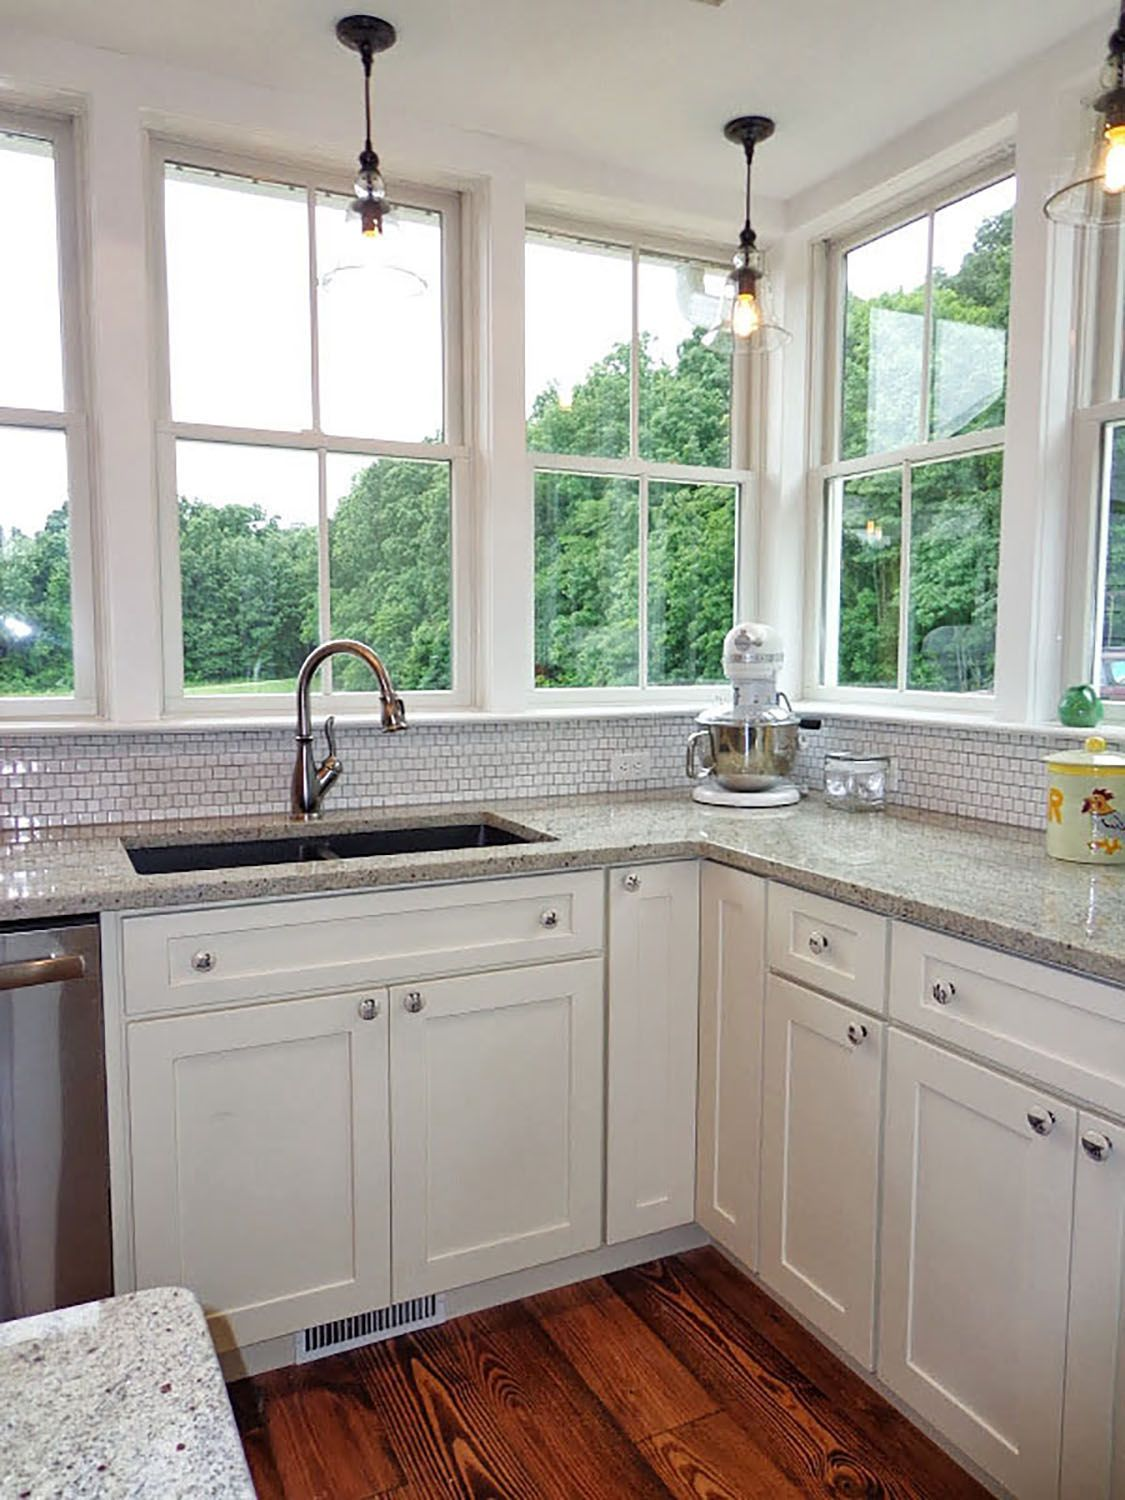 phoenix kitchen gallery features cliqstudios dayton painted white phoenix kitchen gallery features cliqstudios dayton painted white shaker cabinets and furniture style bayport cherry